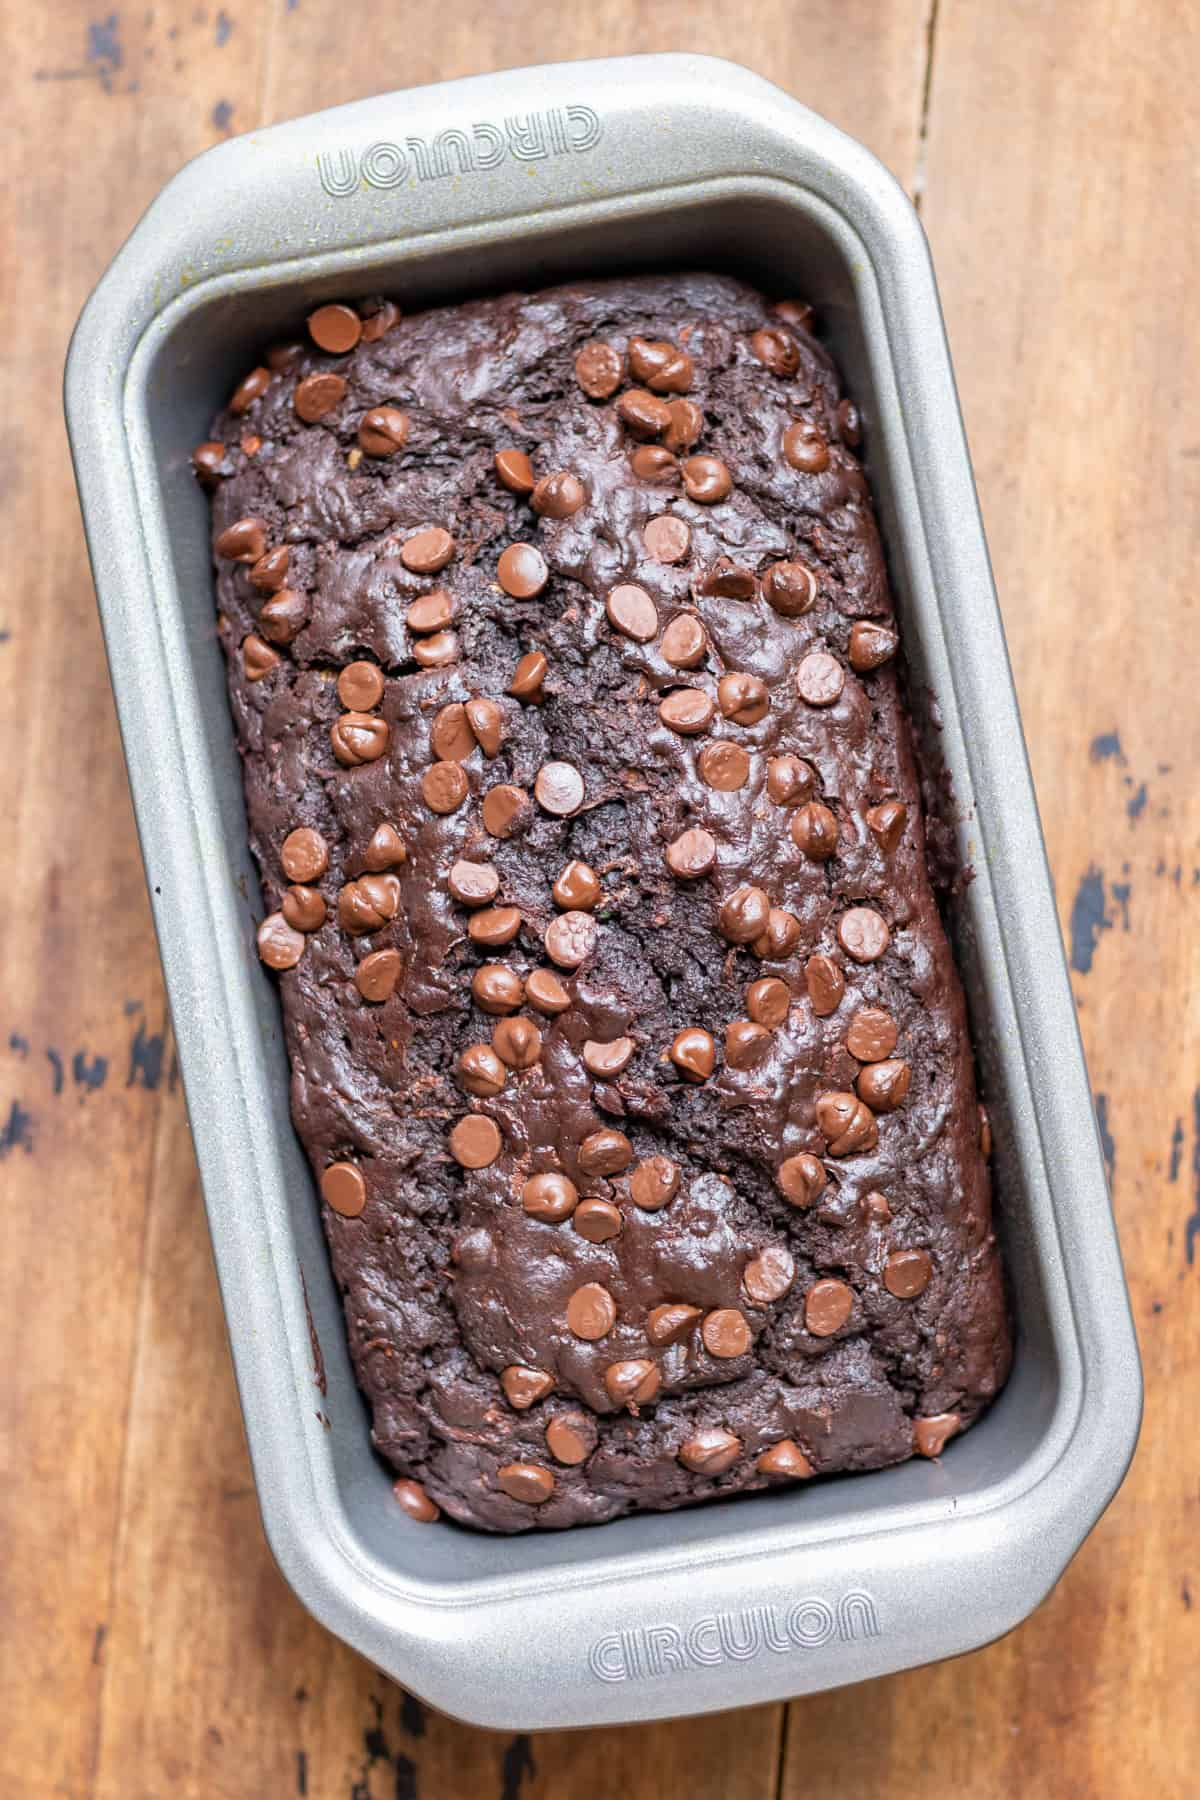 A cooked chocolate zucchini bread in the pan.